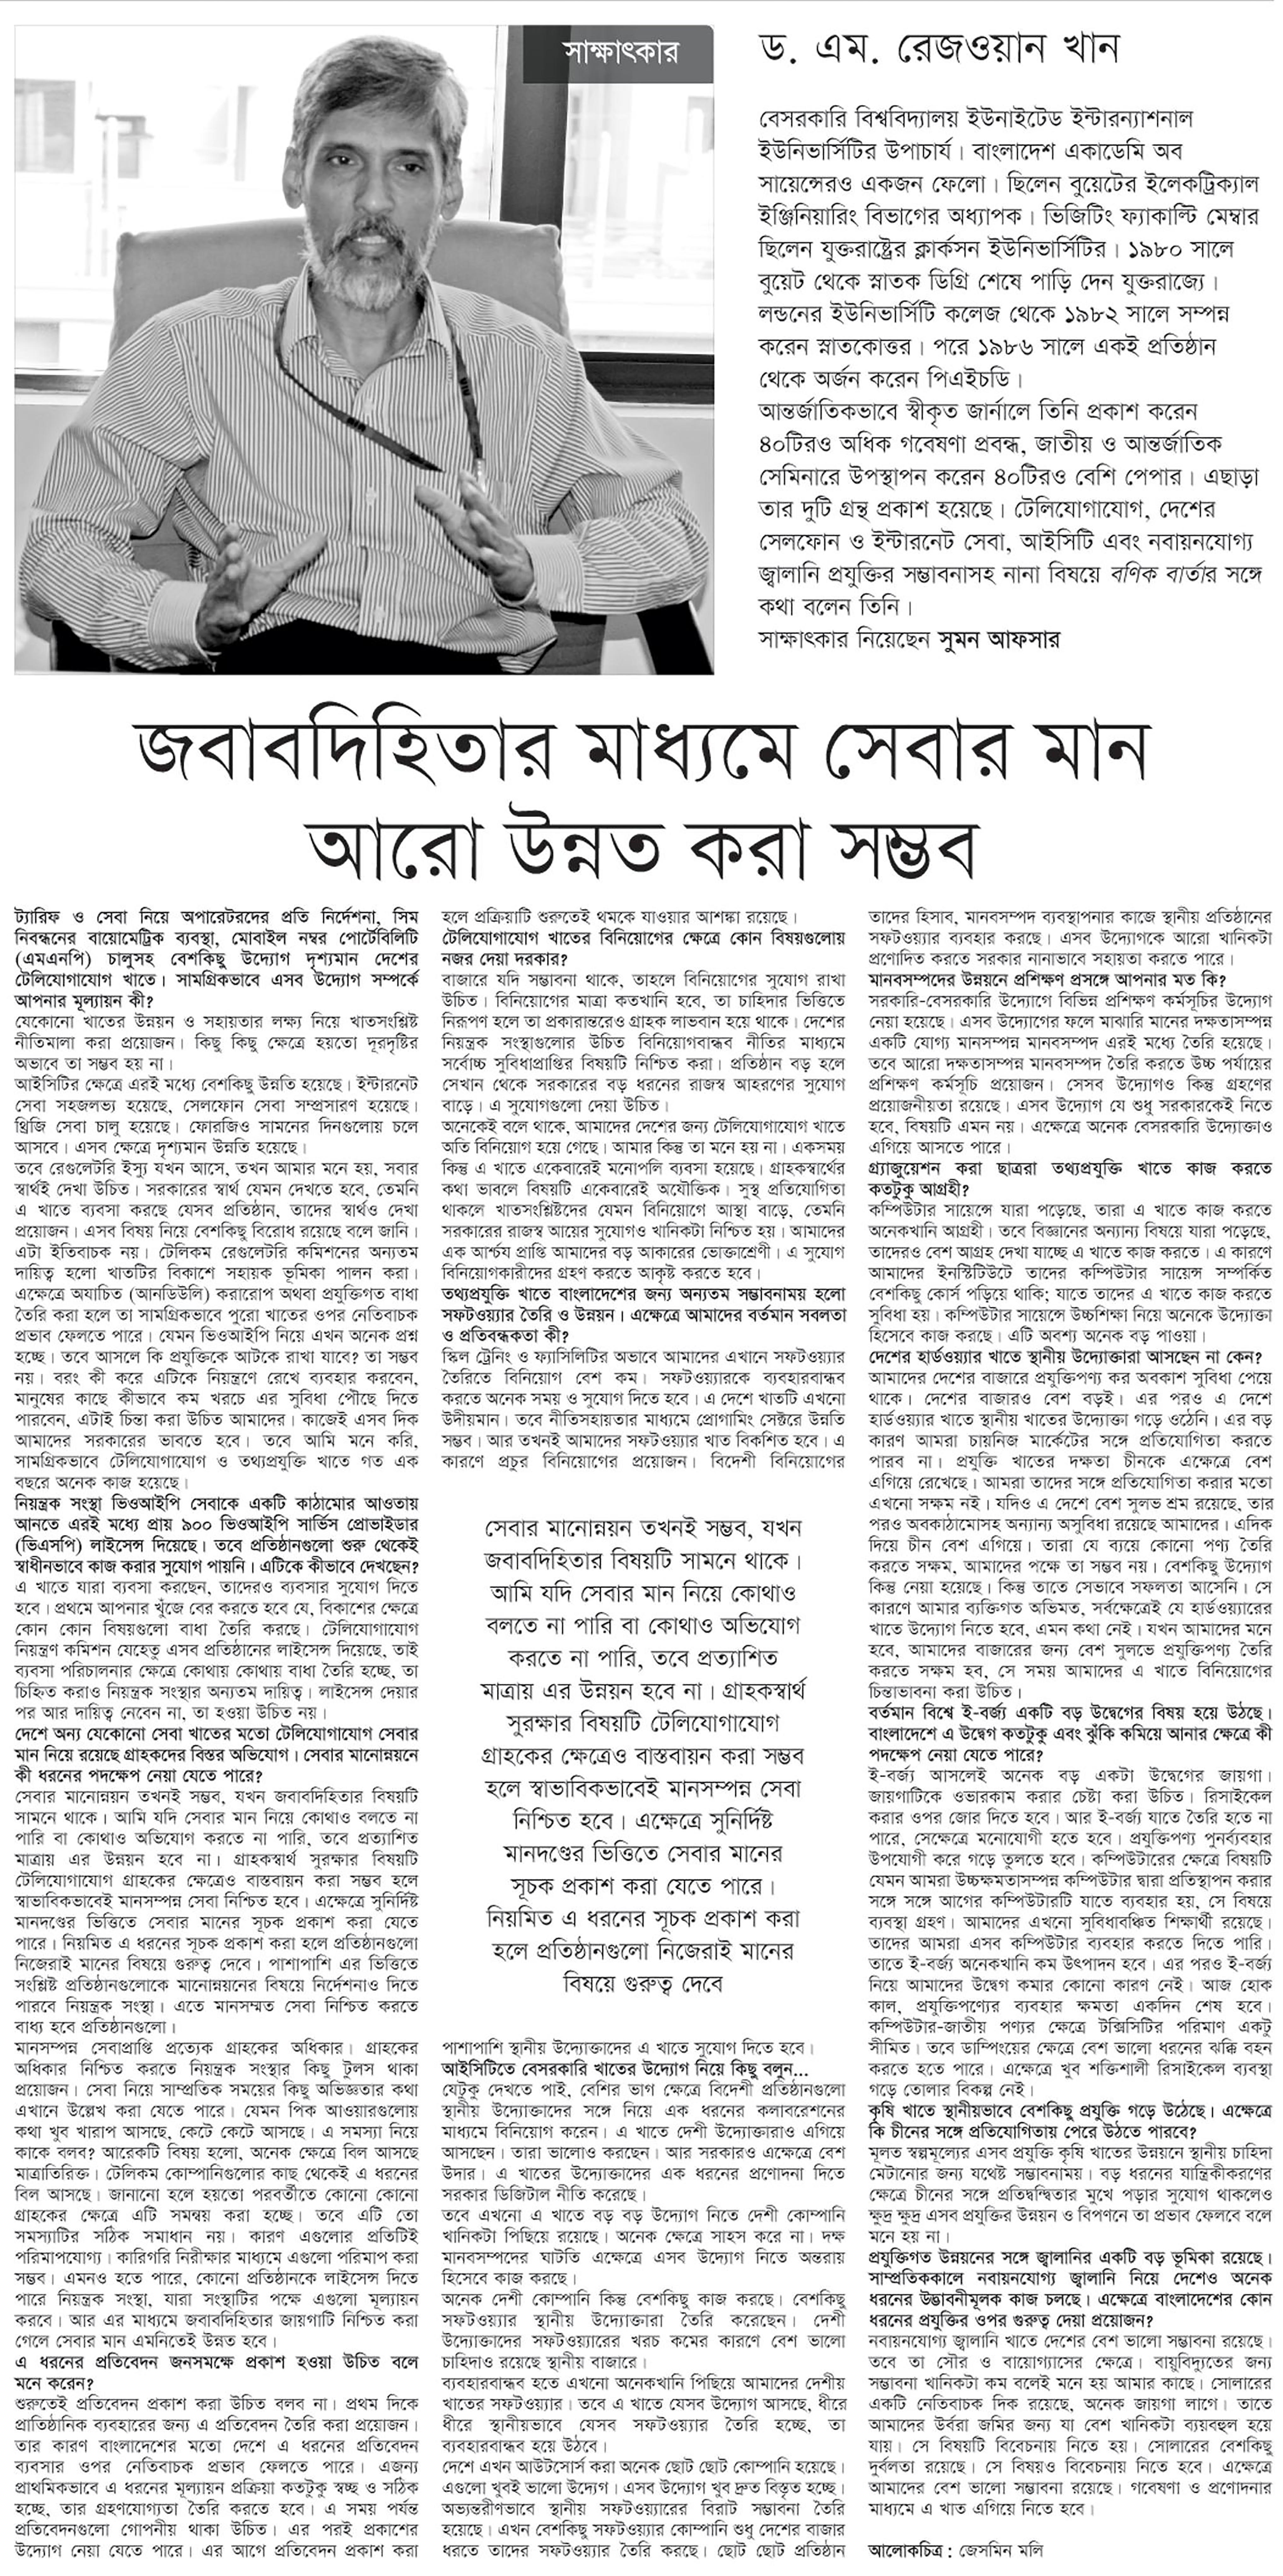 Honorable VC's Gives Interview for The Daily Banik Barta